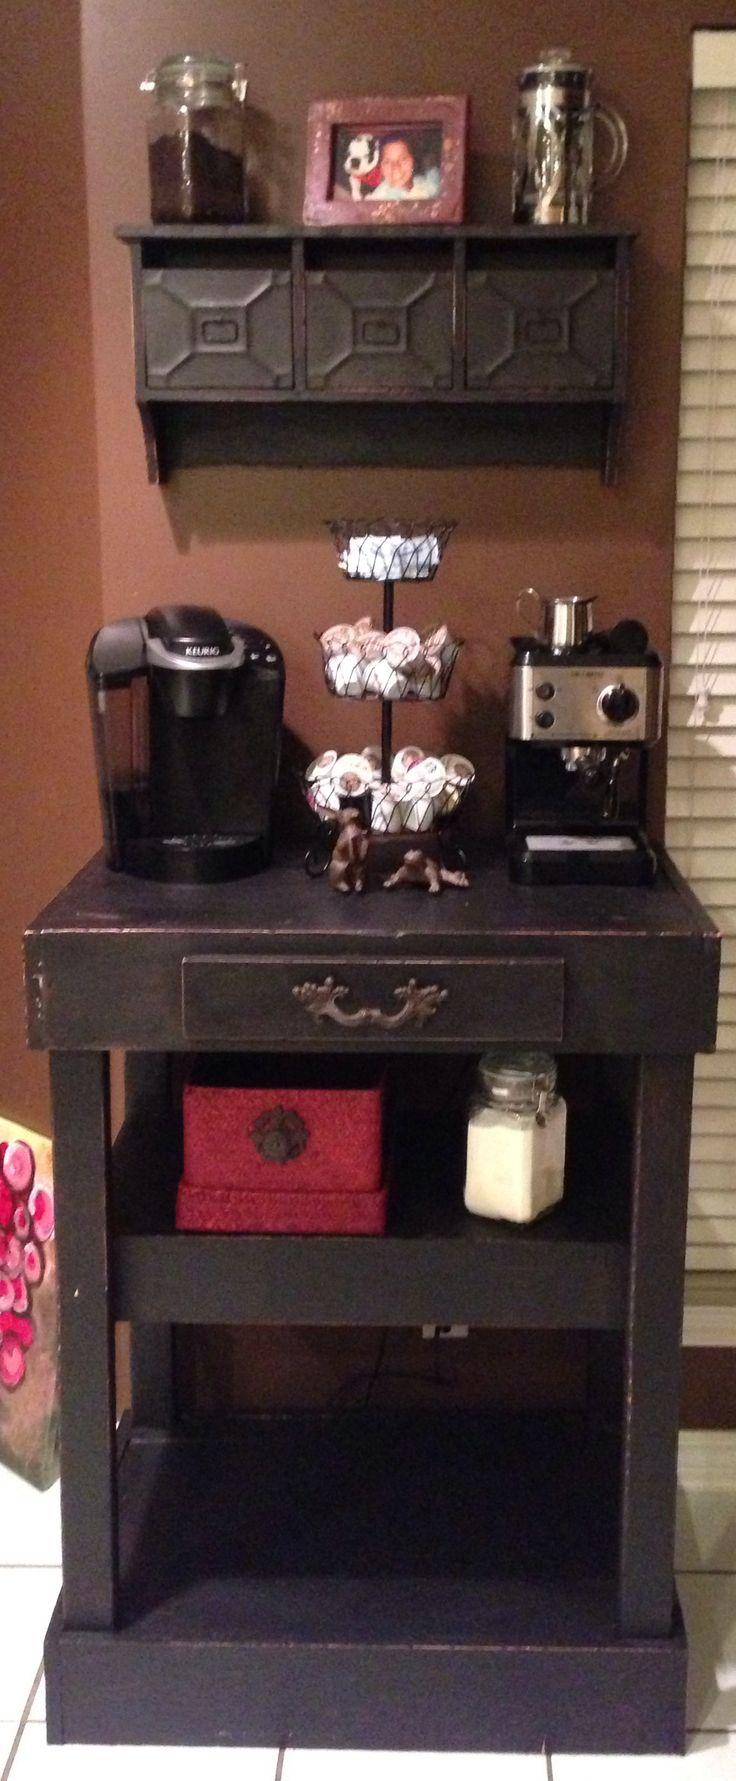 176 best coffee center ideas images on pinterest coffee for Coffee station ideas for the home